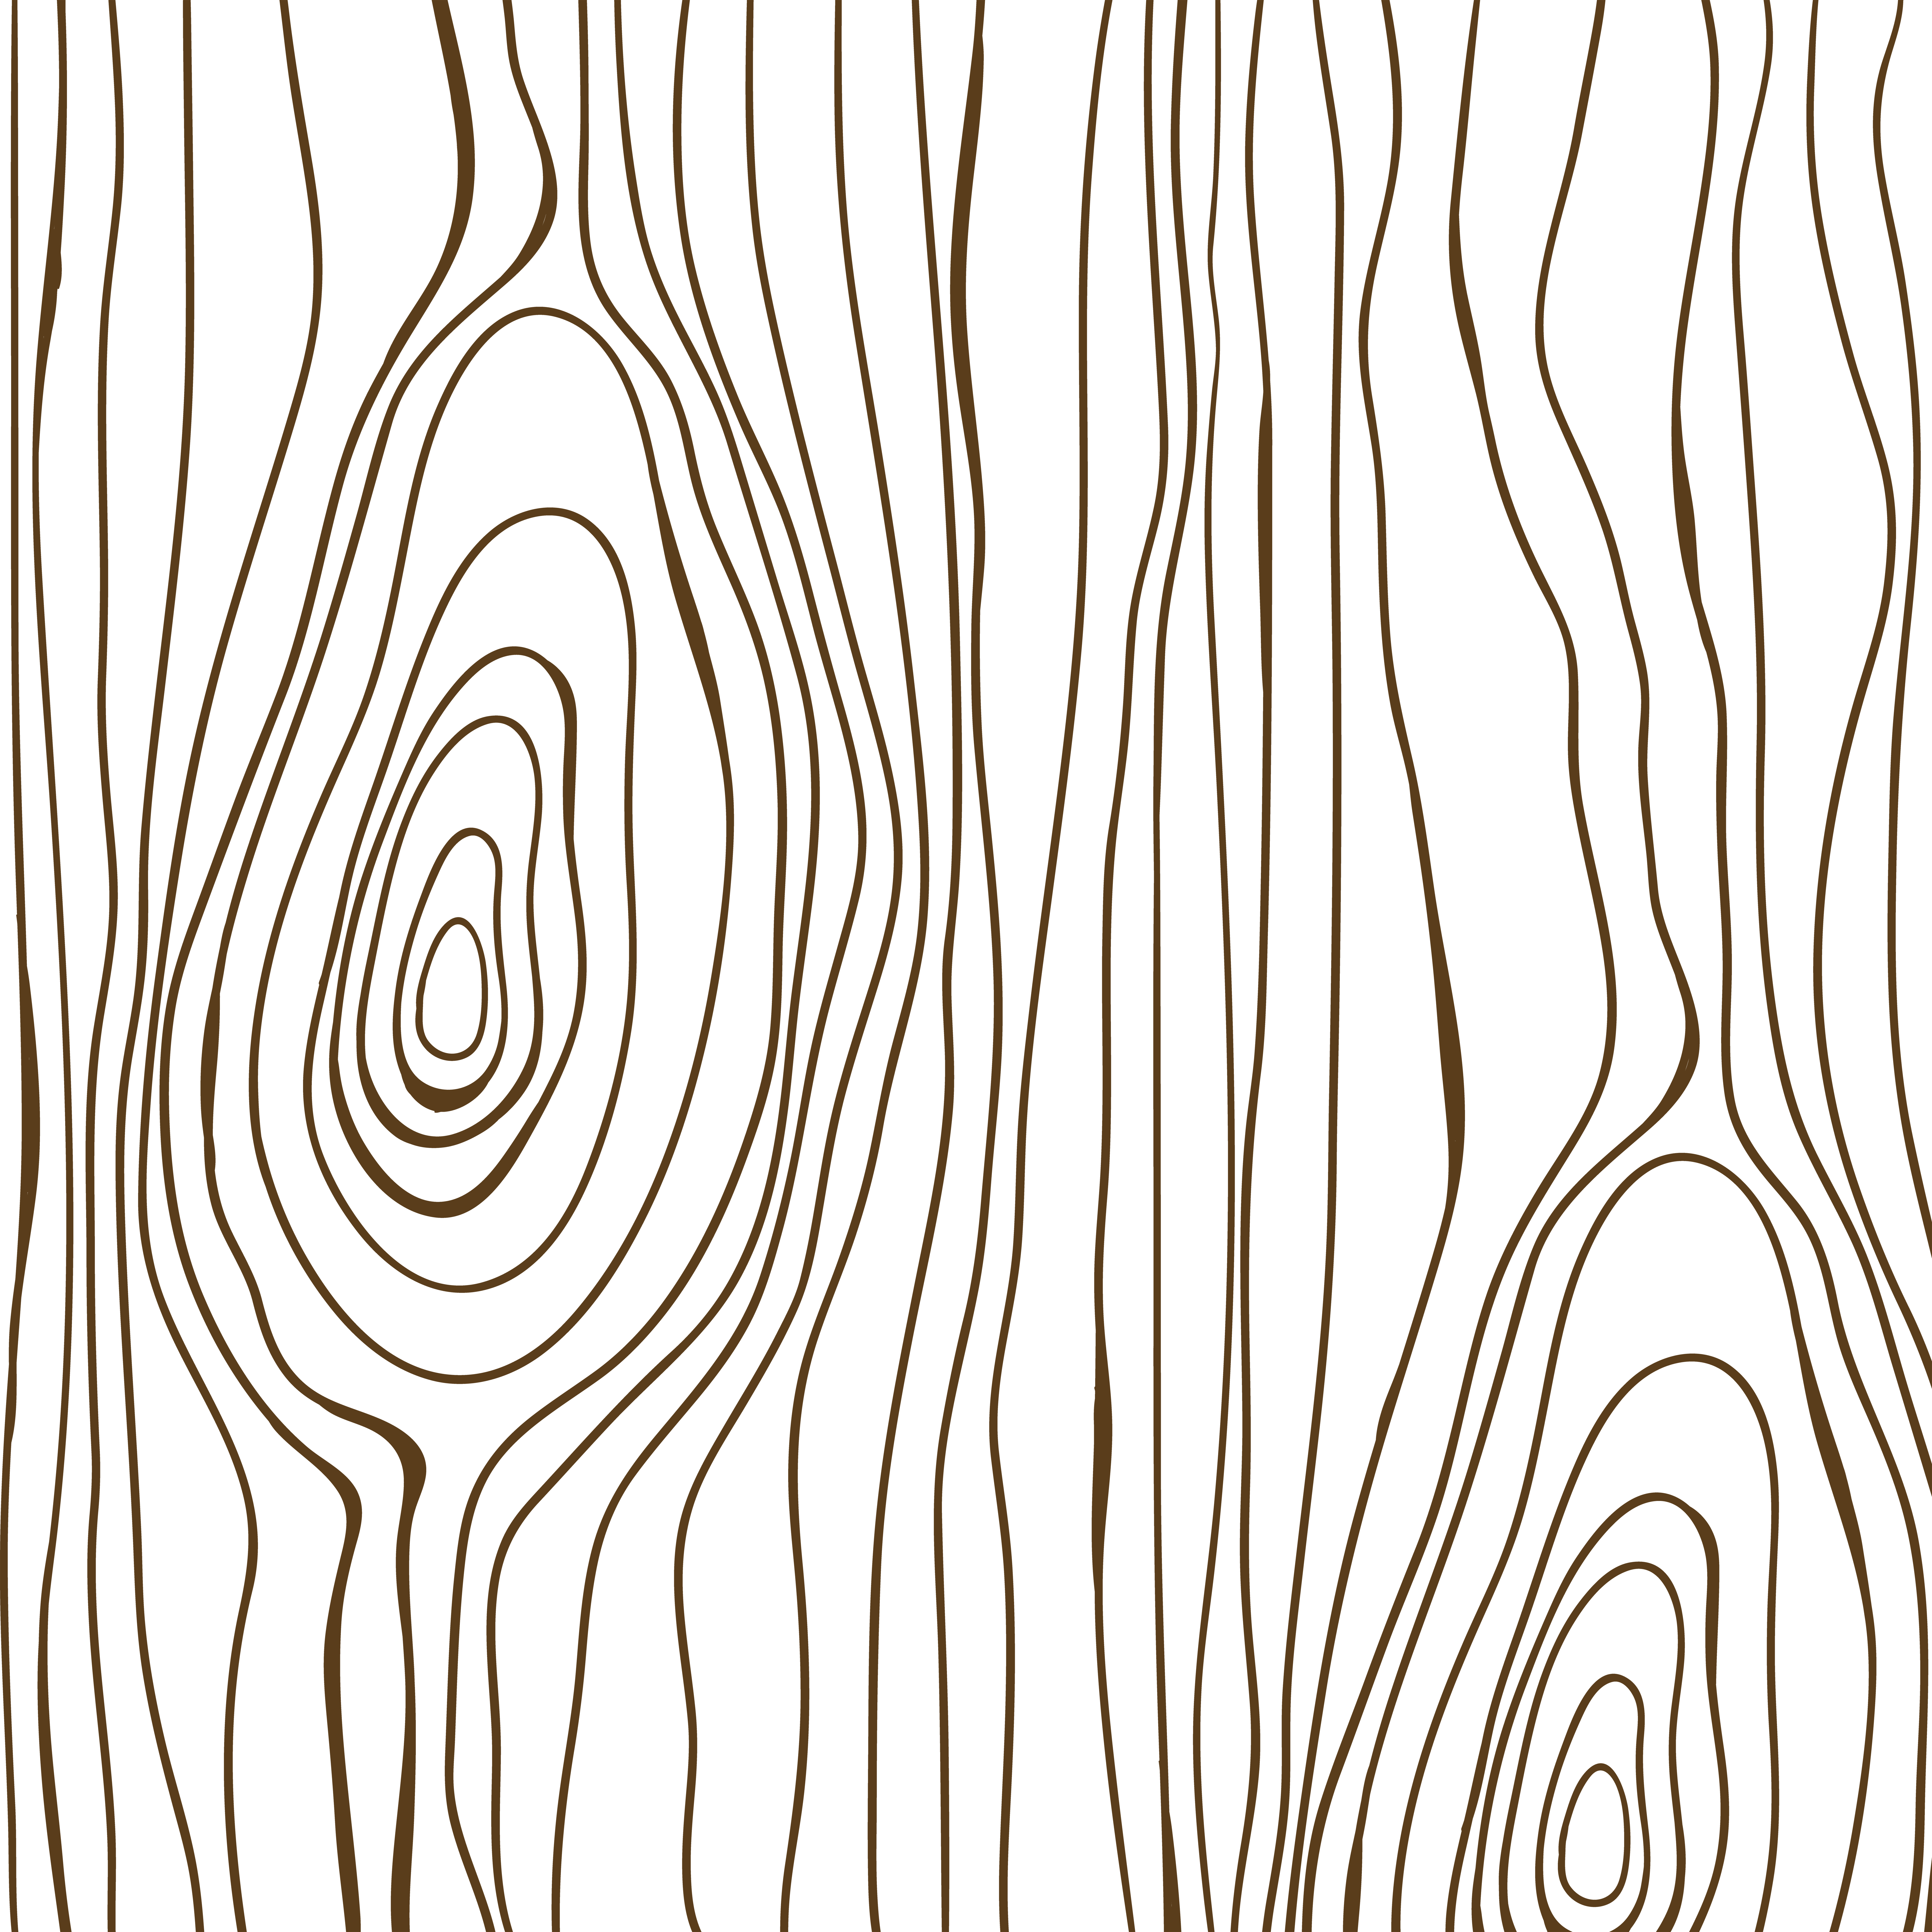 Clipart fall woods. Wood effect for backgrounds